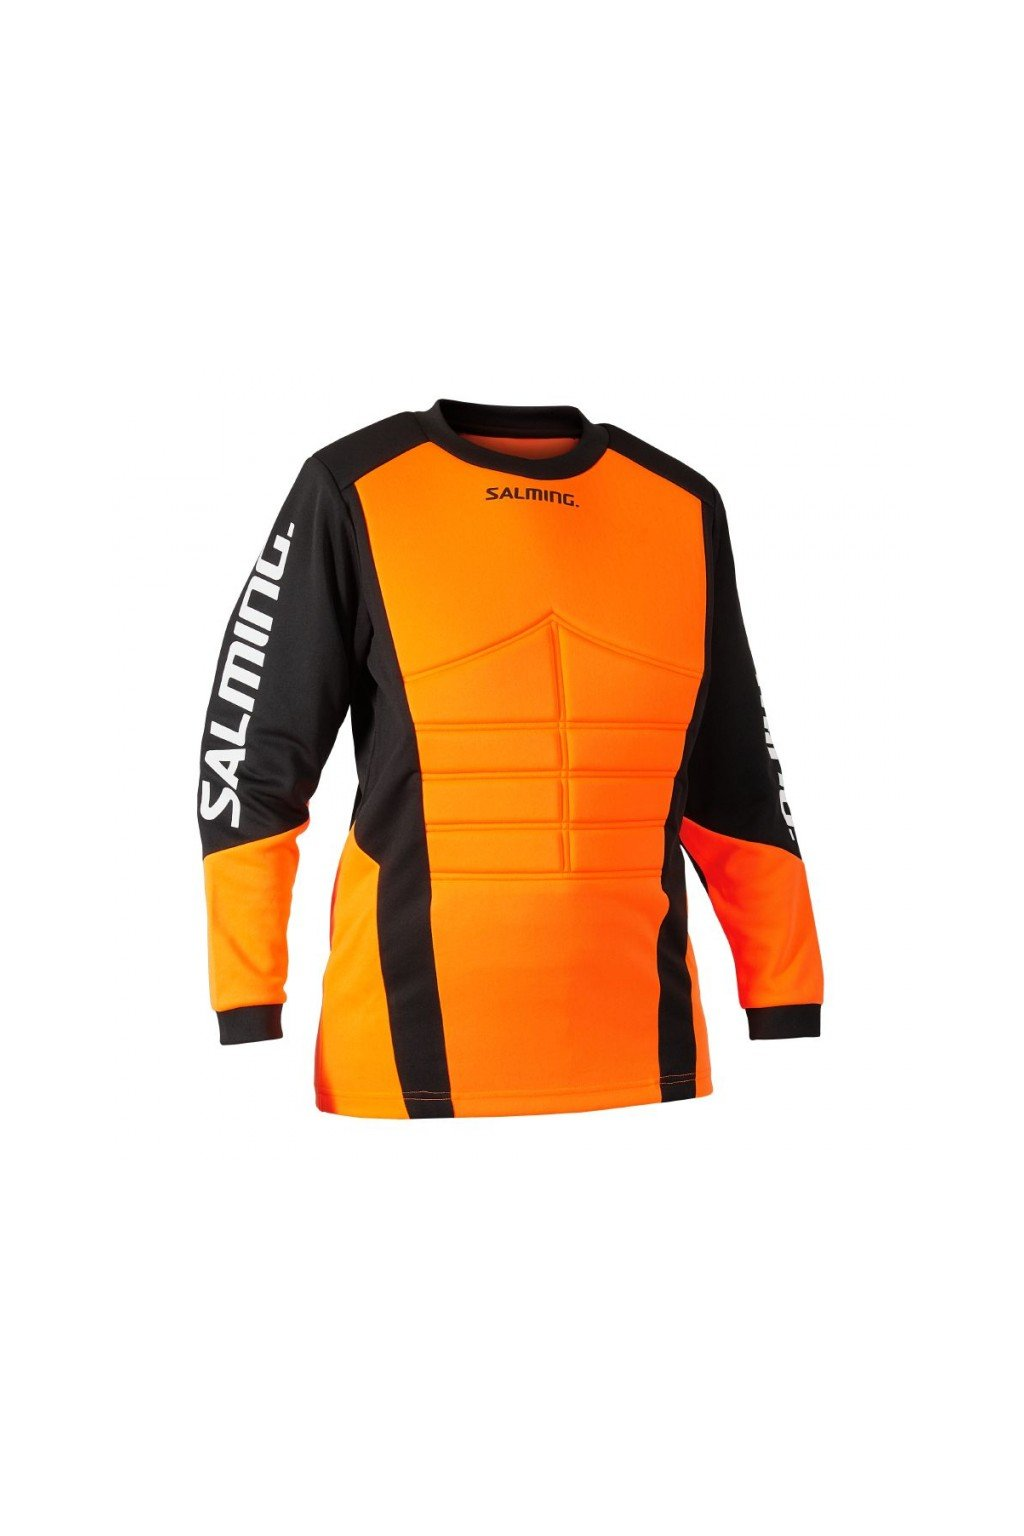 salming atlas jersey jr orange black 128